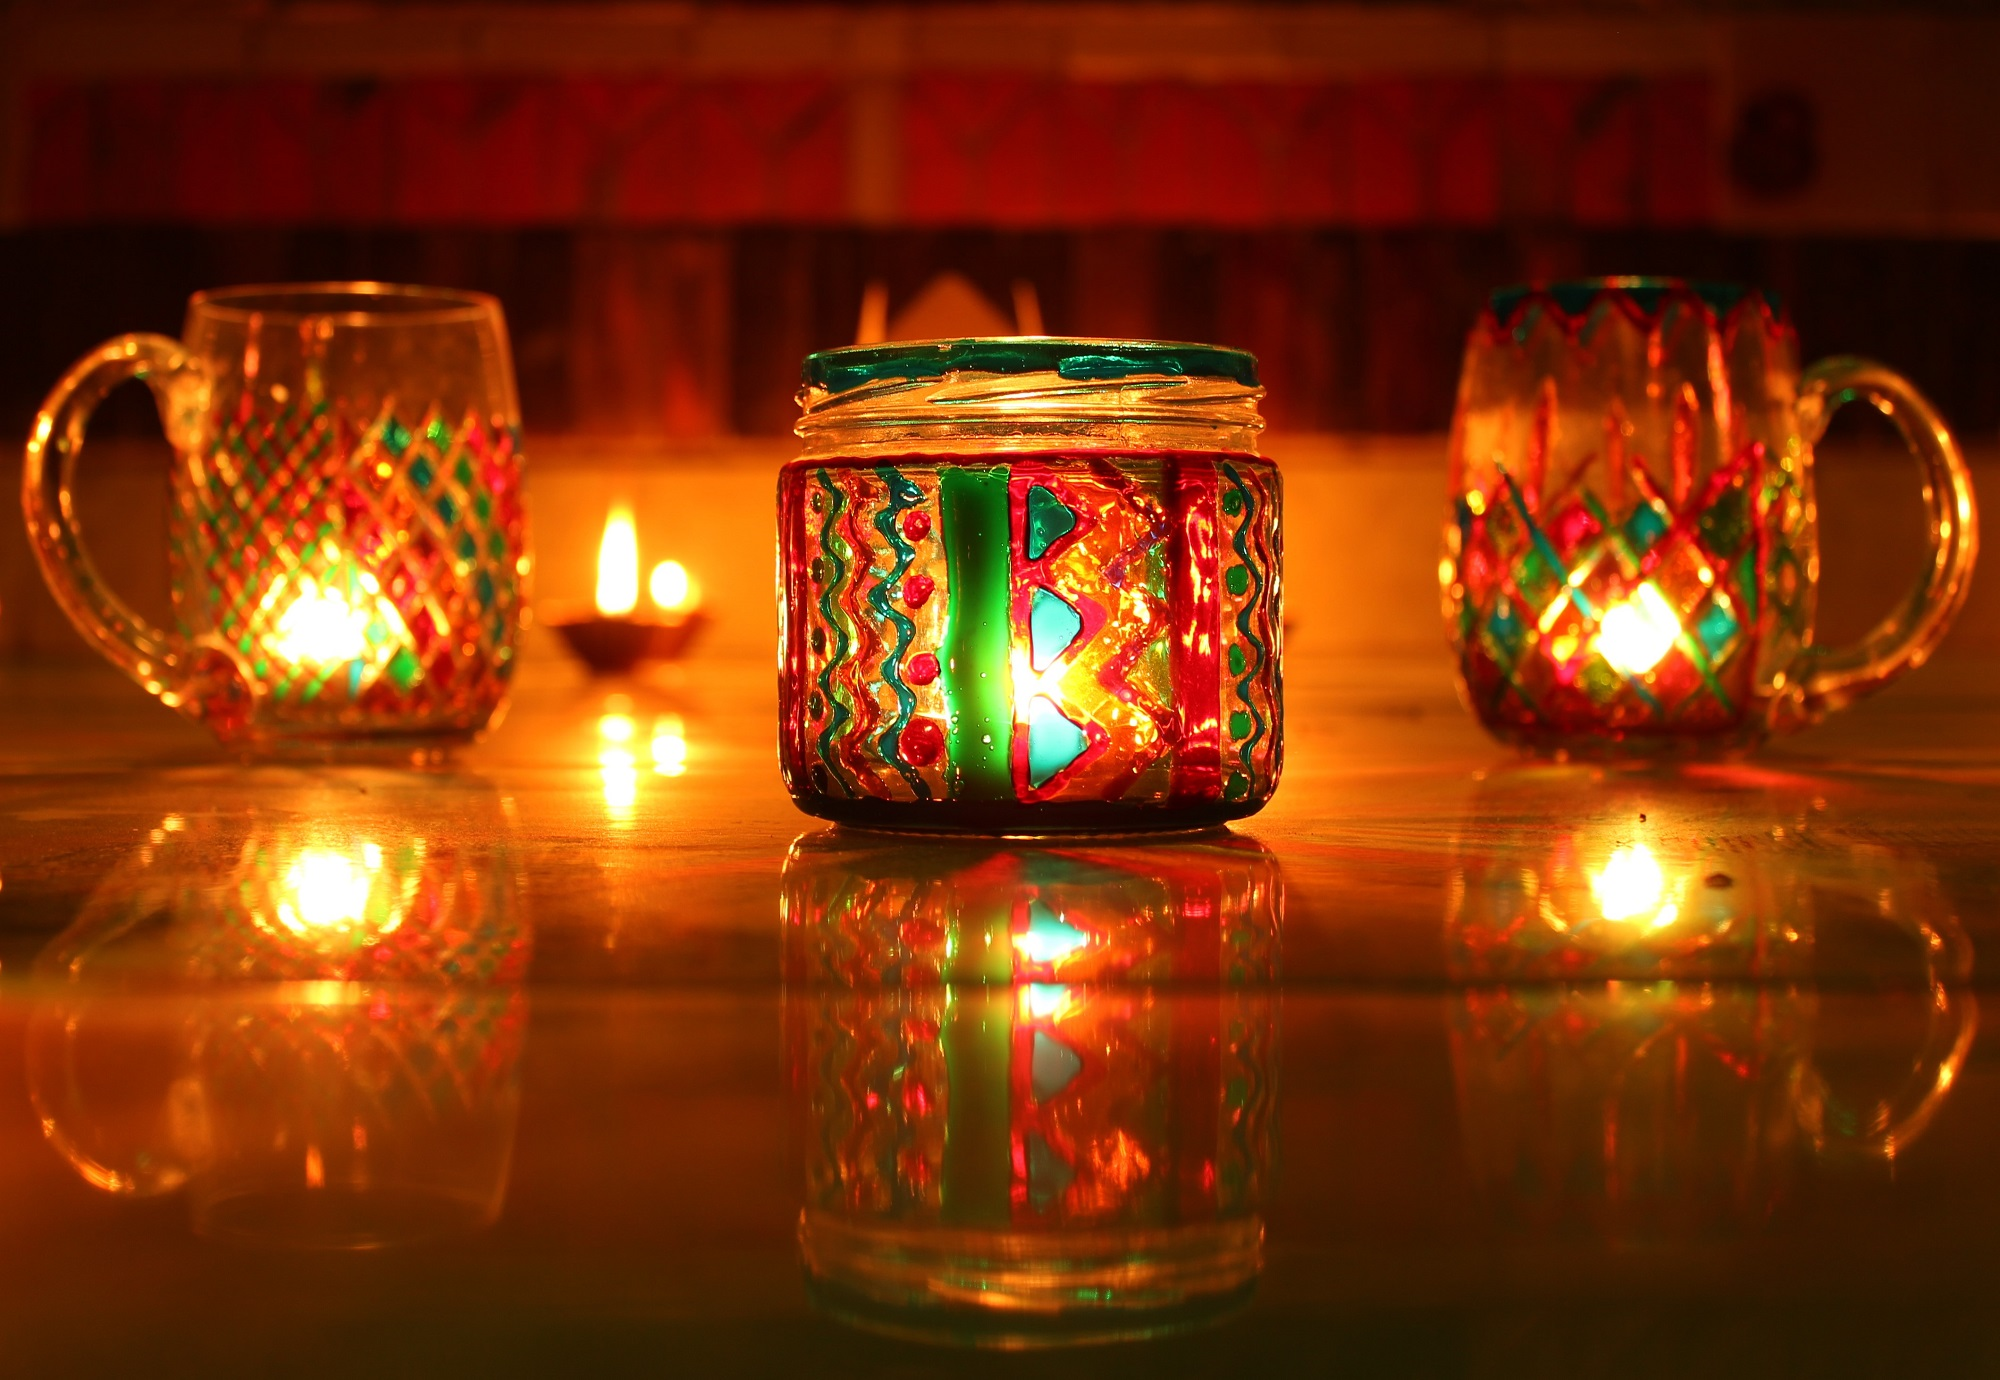 Hand painted glass jars and mugs were used as Diwali lamps, along with diyas. Together, they adorned the porch of the house this Diwali.